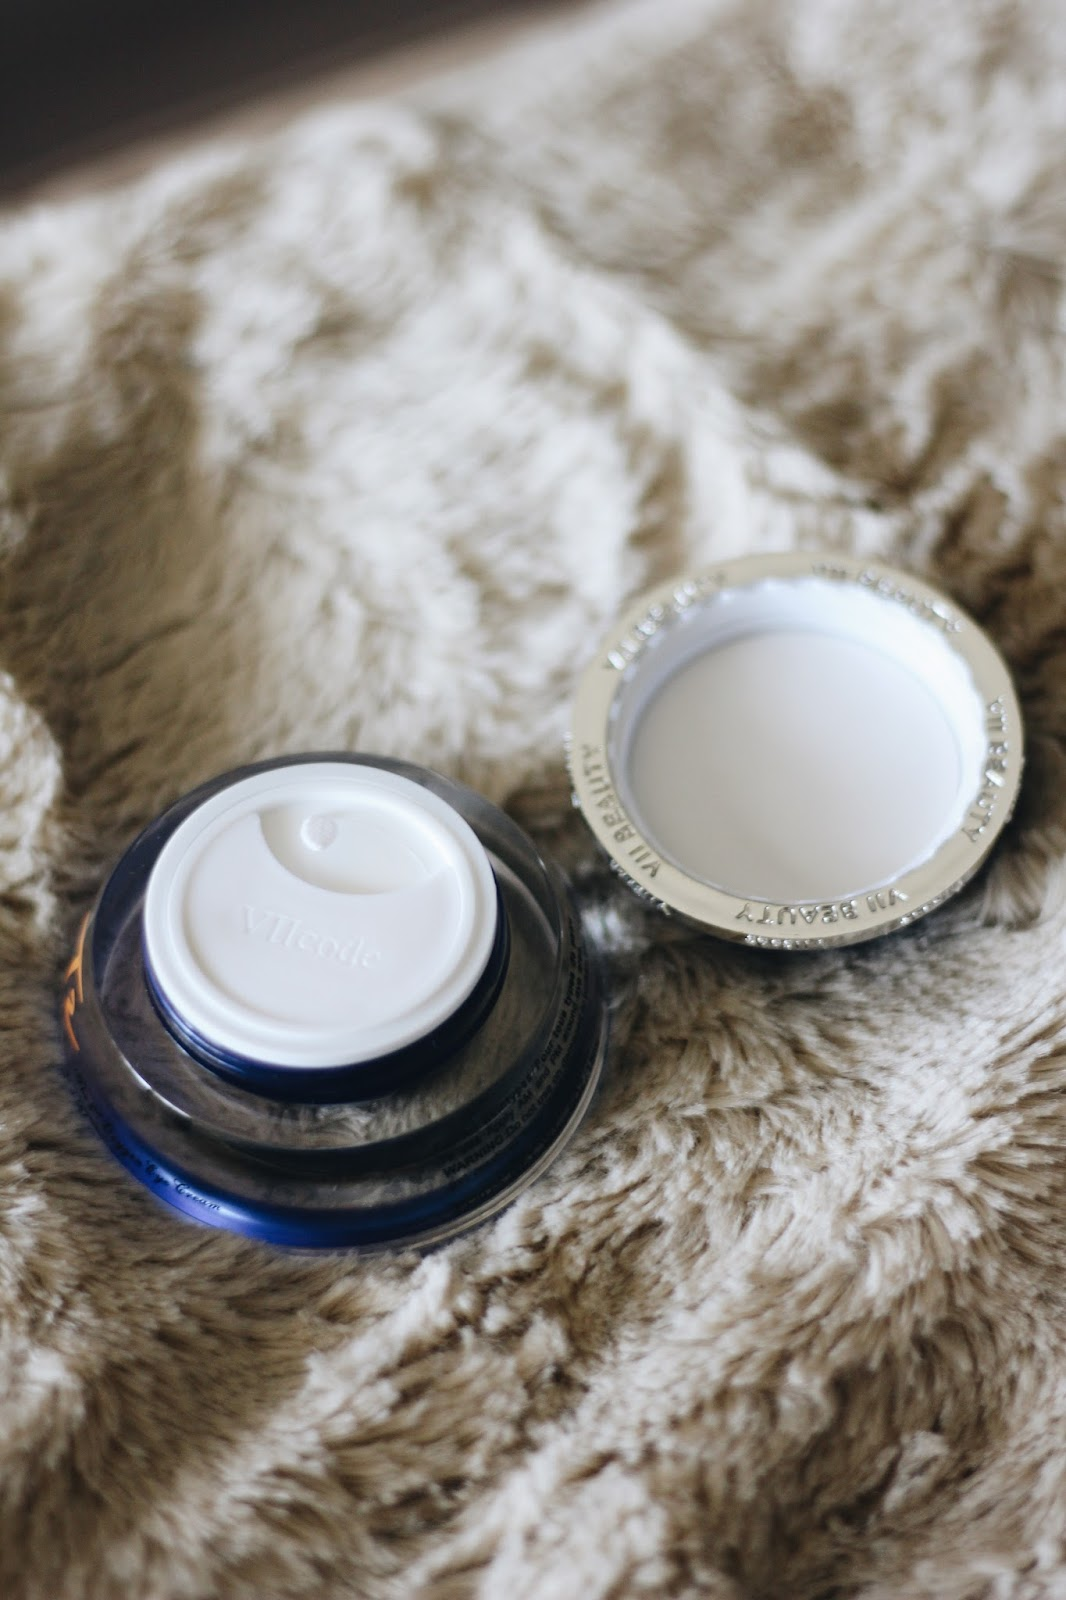 Kick Those Puffy Eyes To The Curb With VIIcode T2 Oxygen Eye Cream